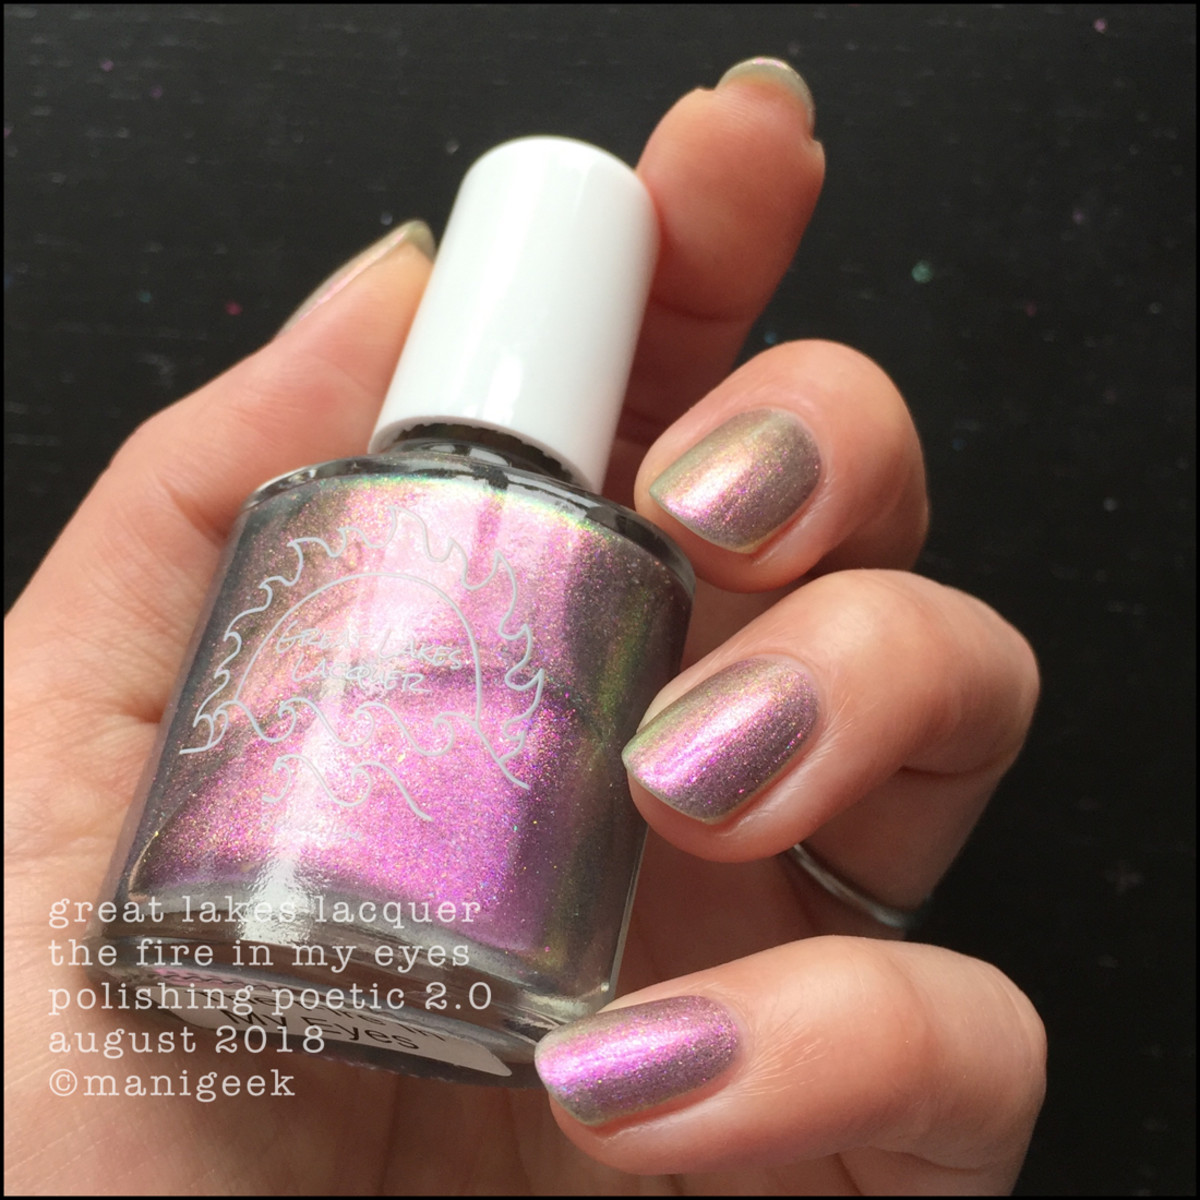 Great Lakes Lacquer The Fire In My Eyes 3 _ Great Lakes Lacquer Polishing Poetic 2.0 Swatches & Review